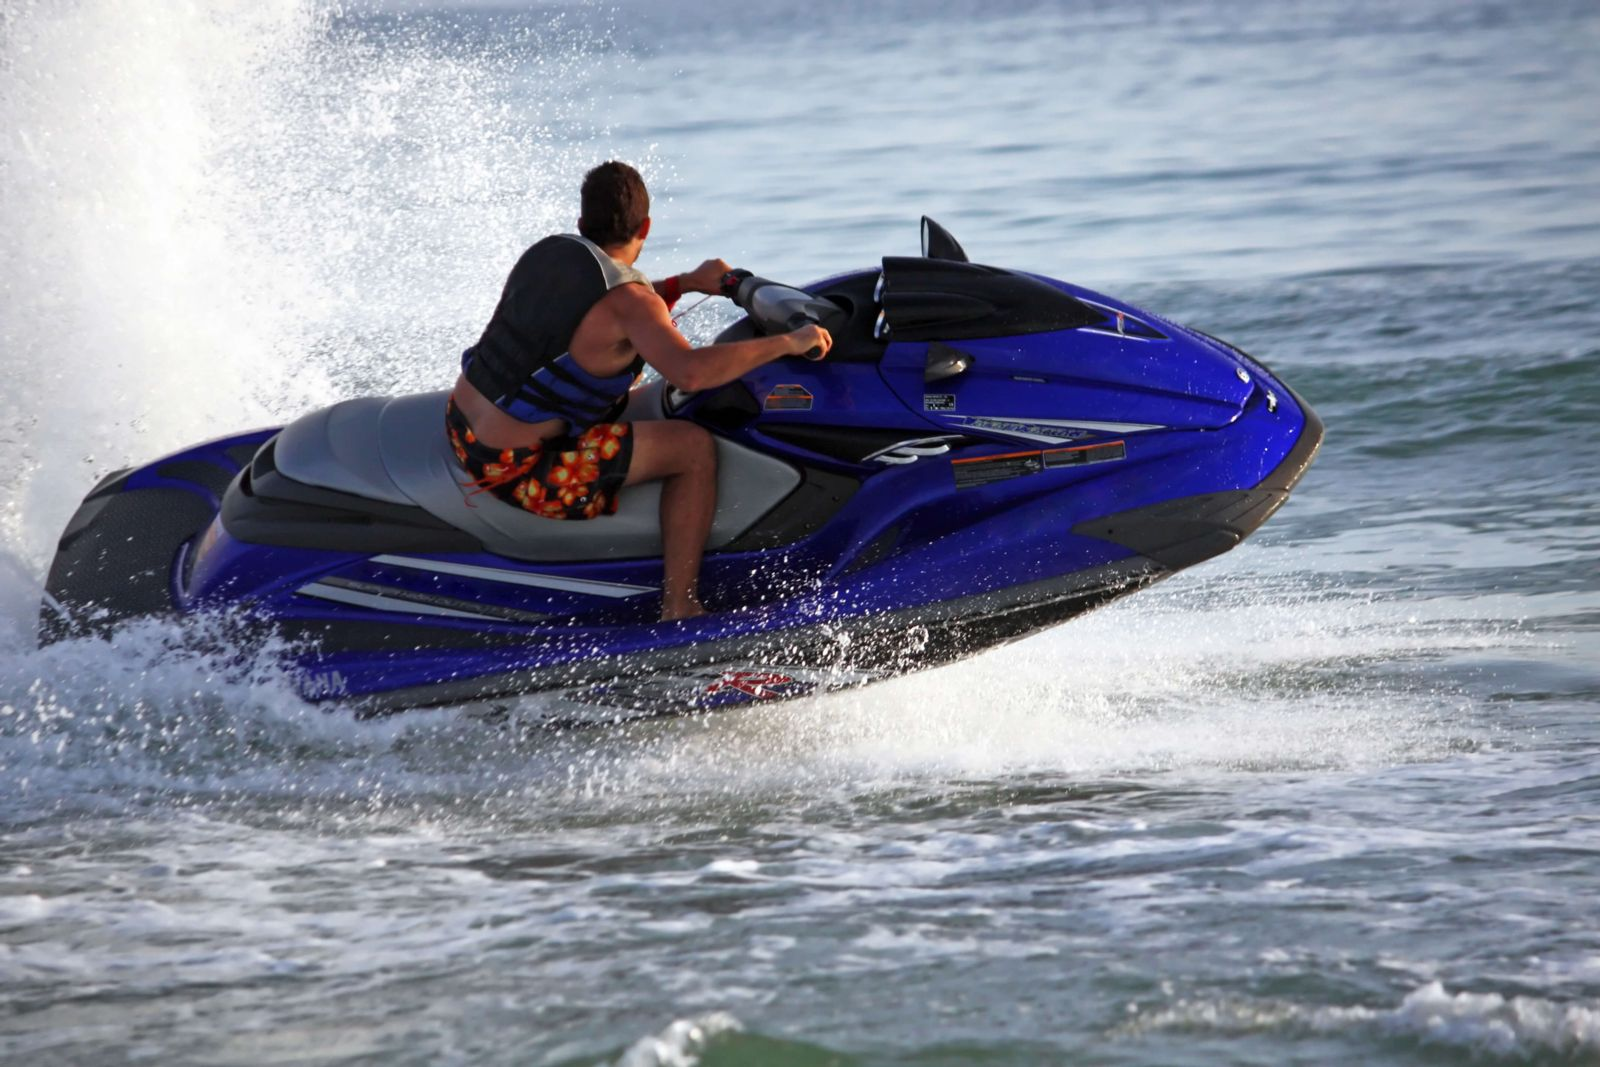 Boat and Jet Ski Accident Lawyer Myrtle Beach The Derrick Law Firm